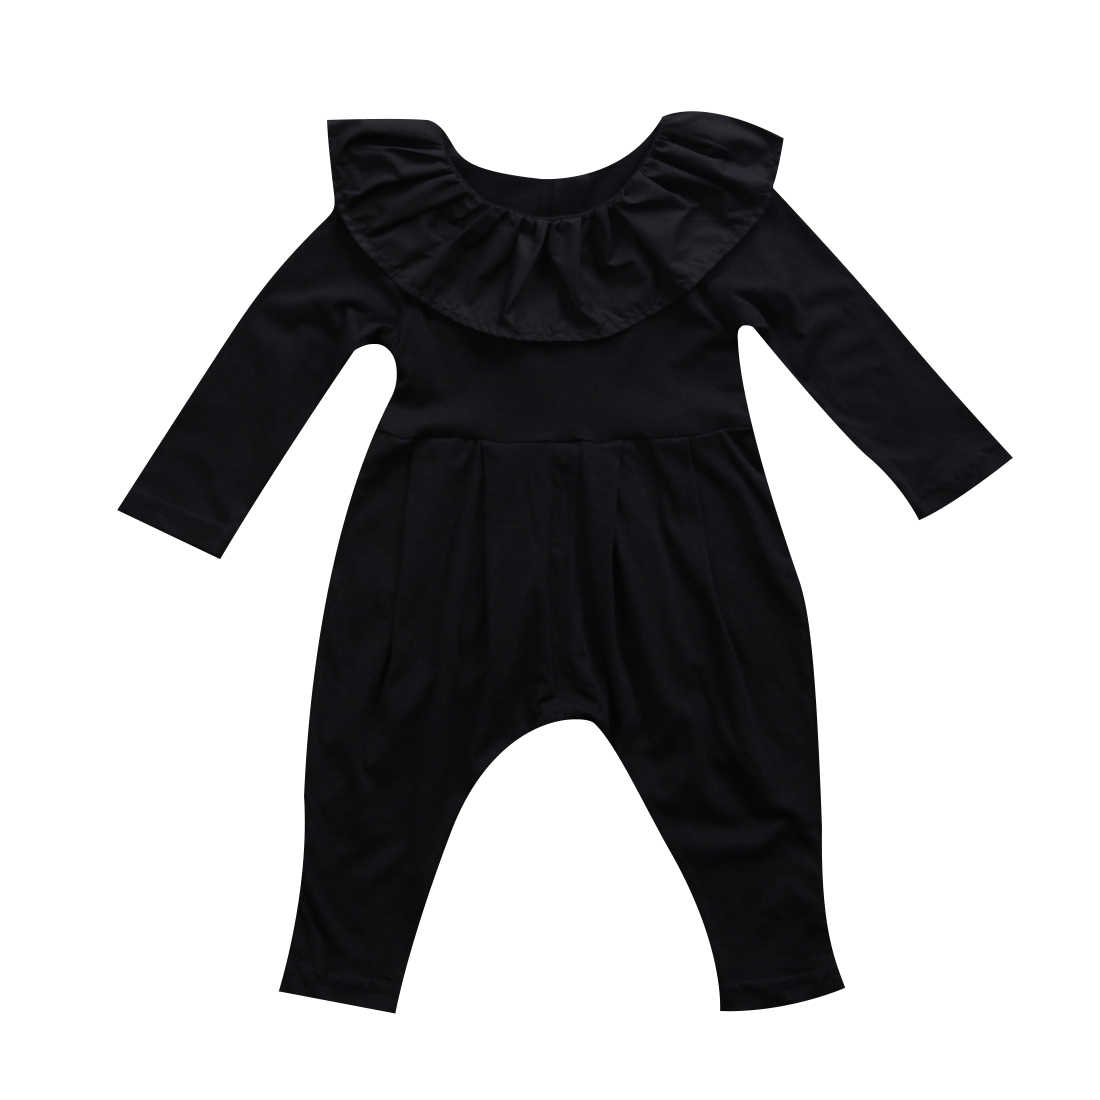 8b495f2884d3 2018 Newest Brand Newborn Baby Girls Ruffle Black Solid Long Sleeve Vintage Style  Romper Clothes 3